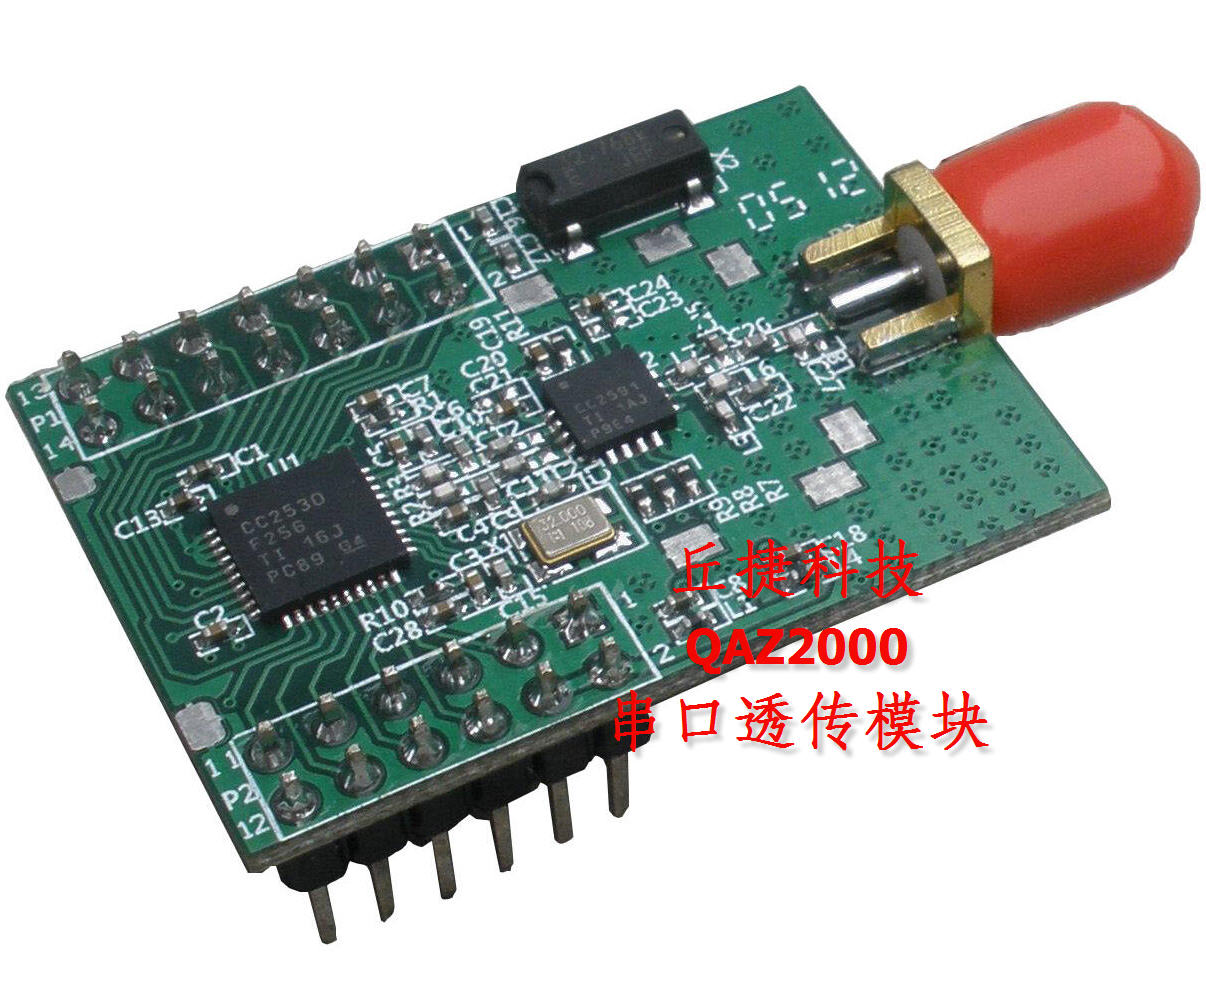 Serial to 1.6km ZigBee wireless module network transmission QAZ2000 CC2530 including antenna zigbee cc2530 wireless transmission module rs485 to zigbee board development board industrial grade